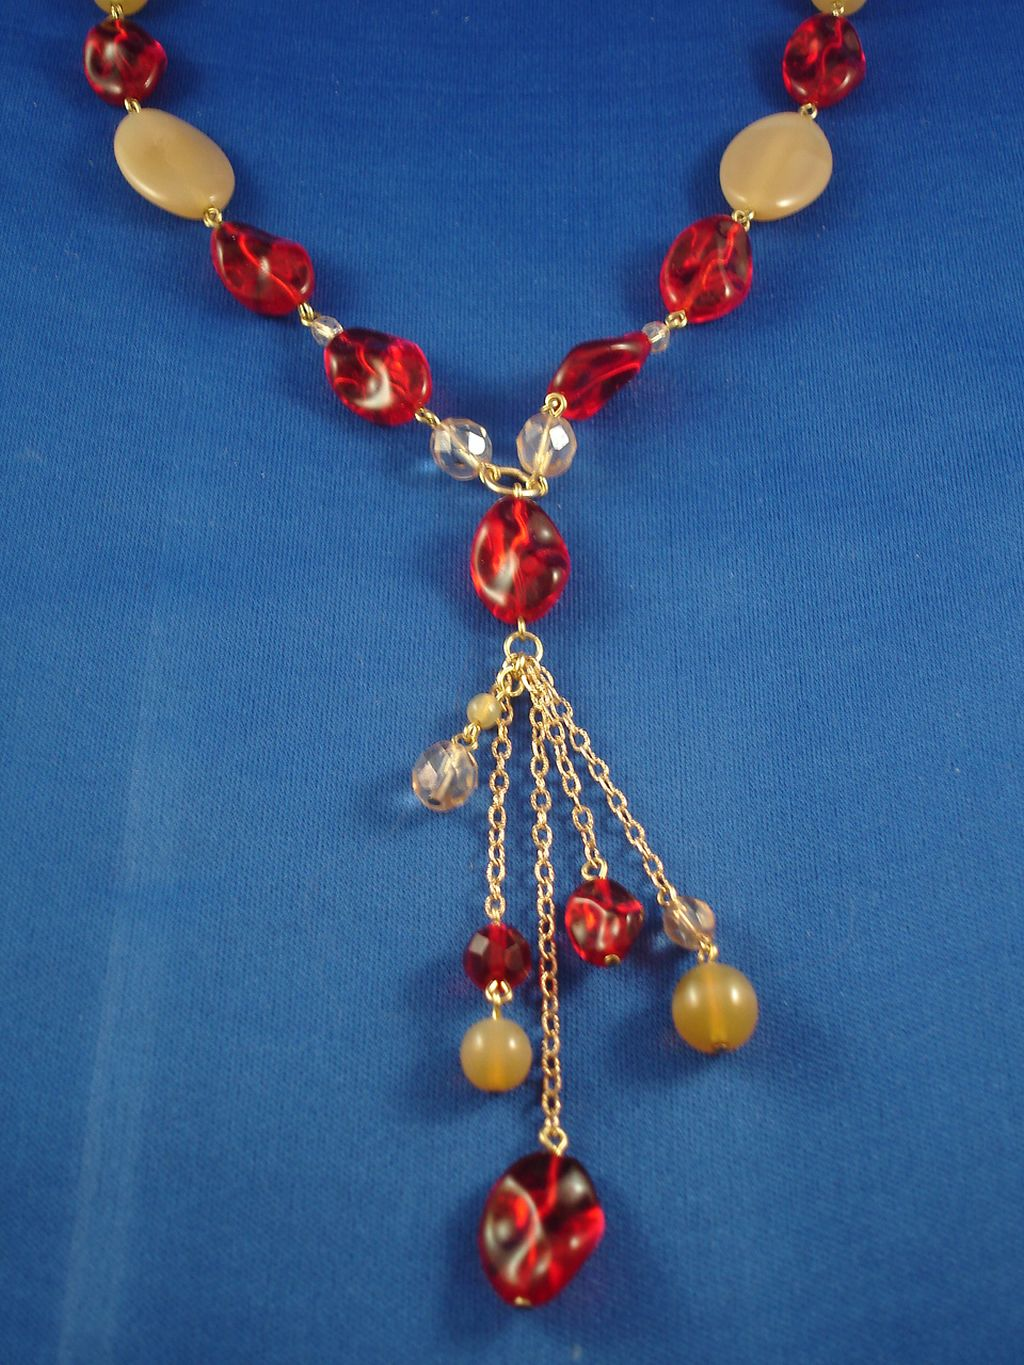 Red & Beige Beads Necklace, Gold Color Chain, Anti-allergic Jewelry